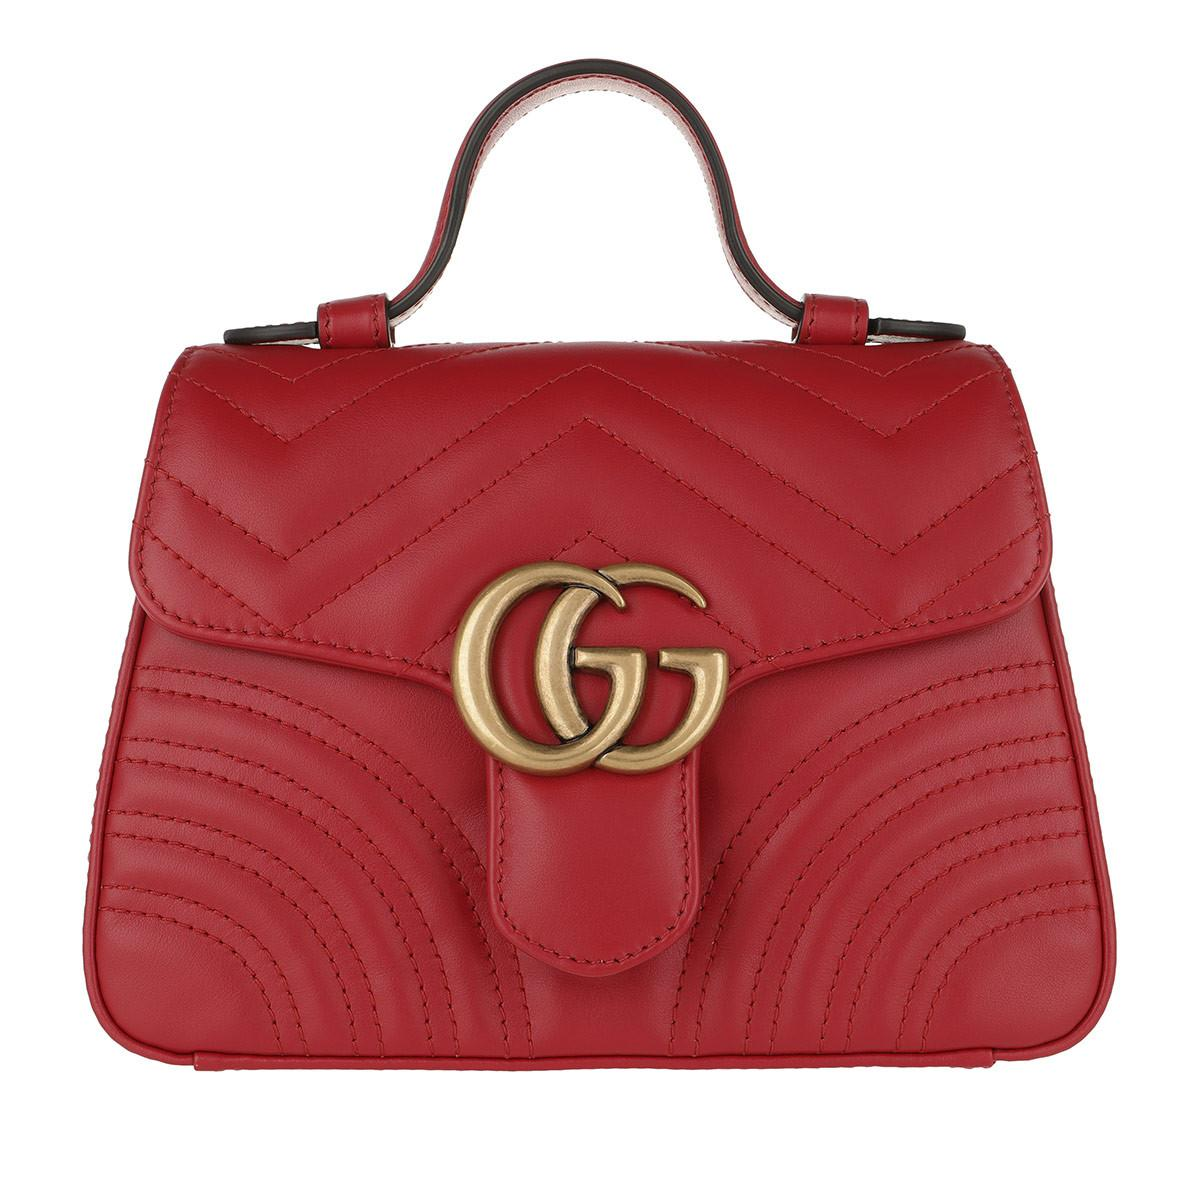 e6e69ef6f79f39 Gucci GG Marmont Mini Top Handle Bag Hibiscus Red in Red - Lyst